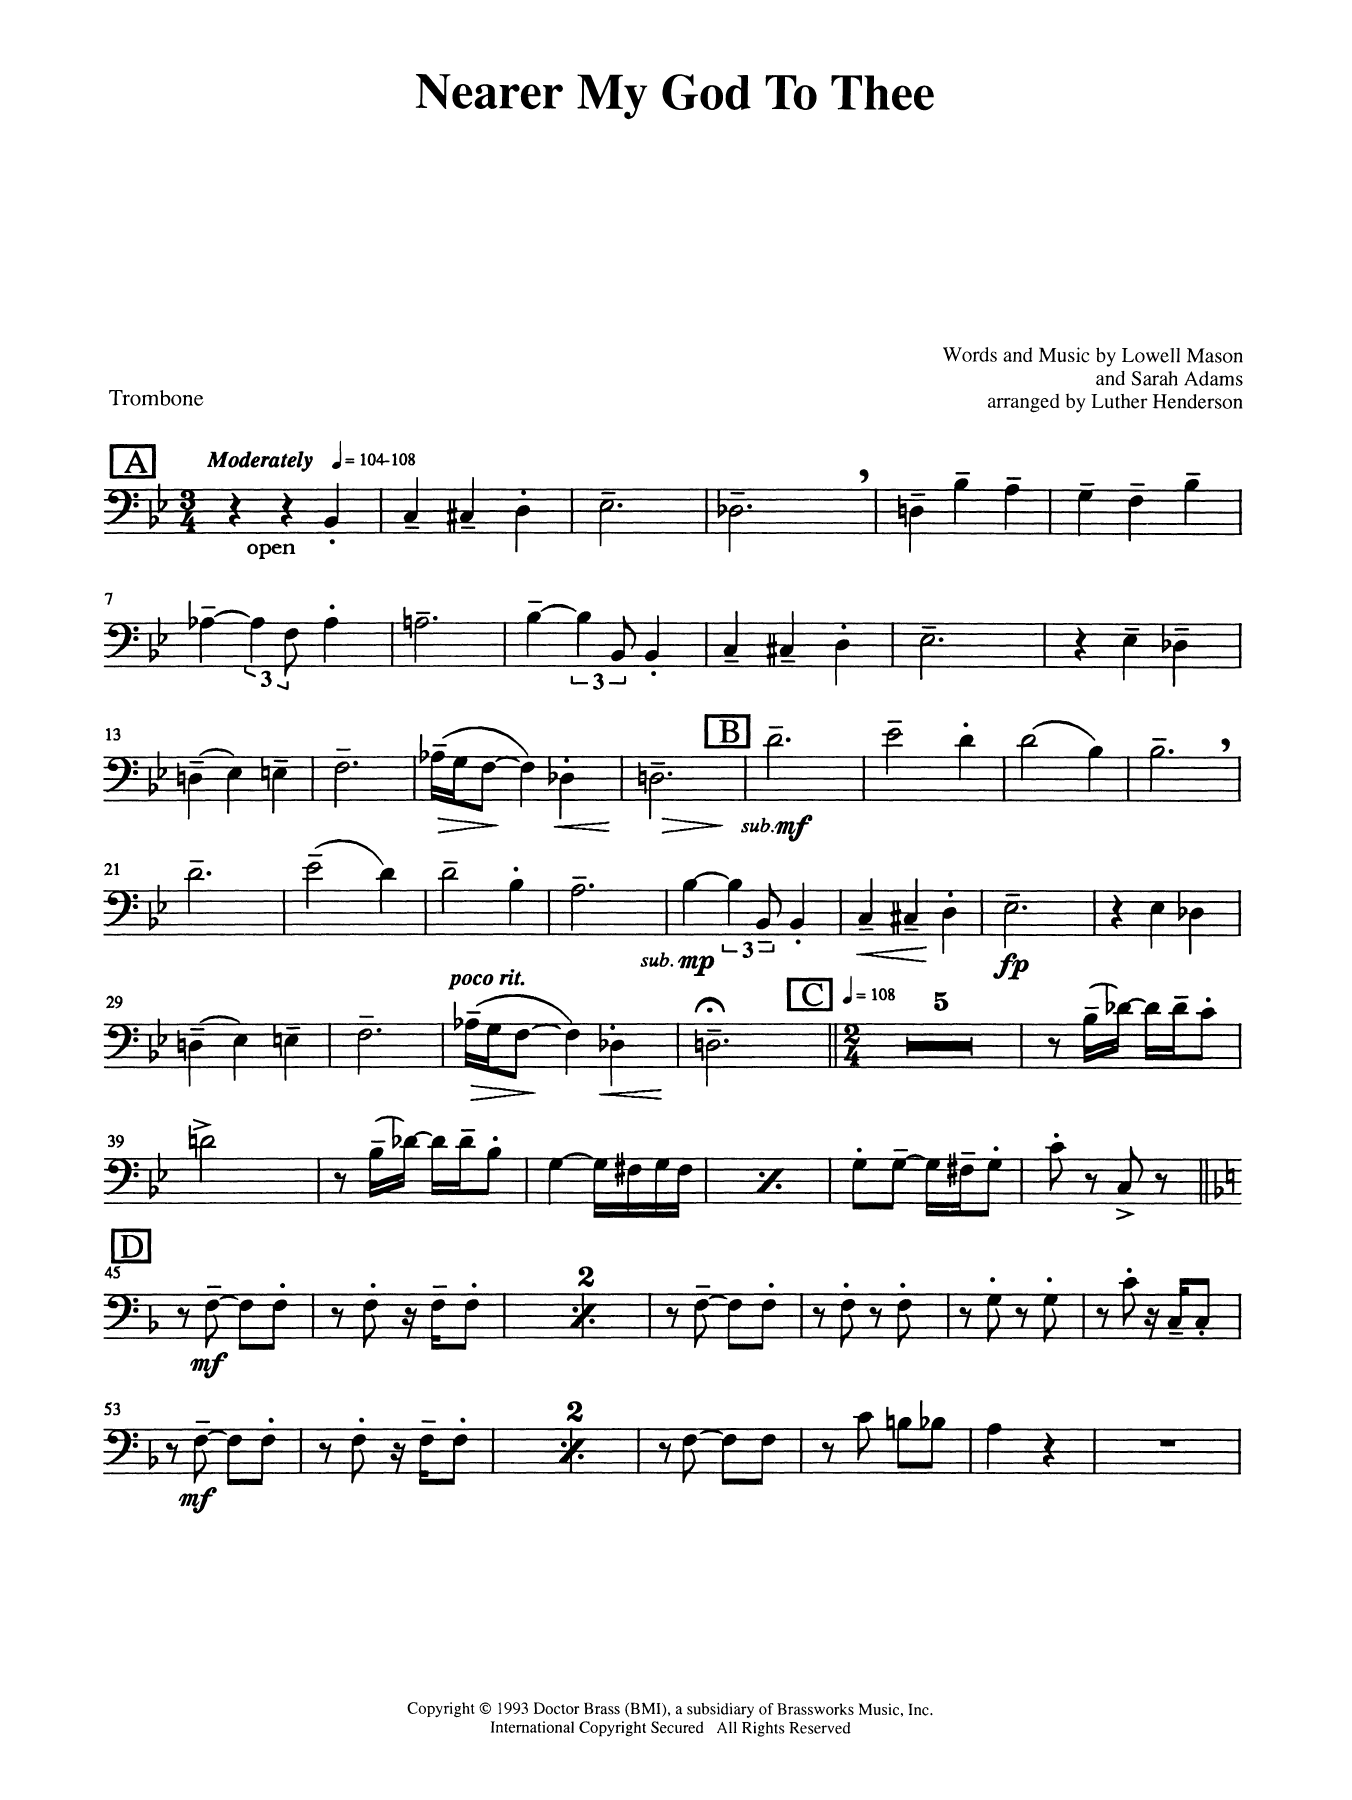 Nearer My God to Thee - Trombone (B.C.) Sheet Music